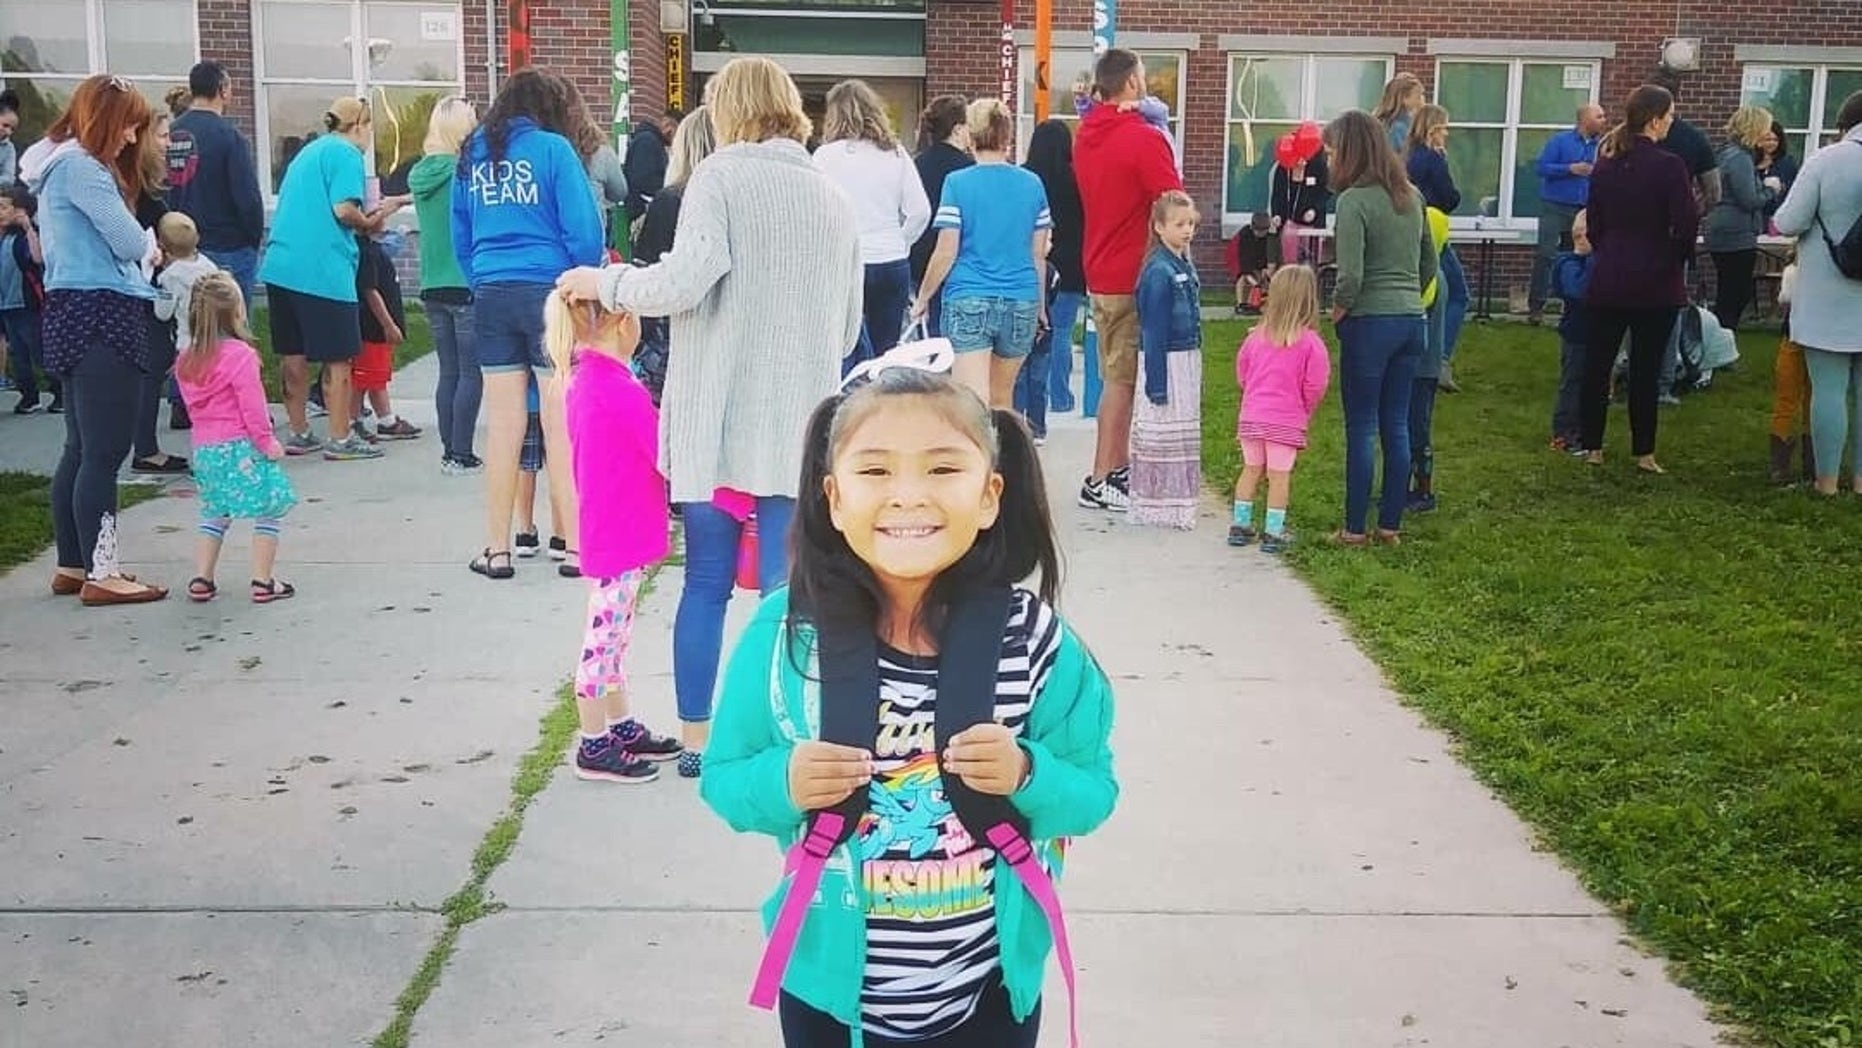 While health officials declined to reveal additional details, family members have identified the victim as 6-year-old Allison Eaglespeaker, a kindergartener who died of influenza B and pneumonia on Saturday.